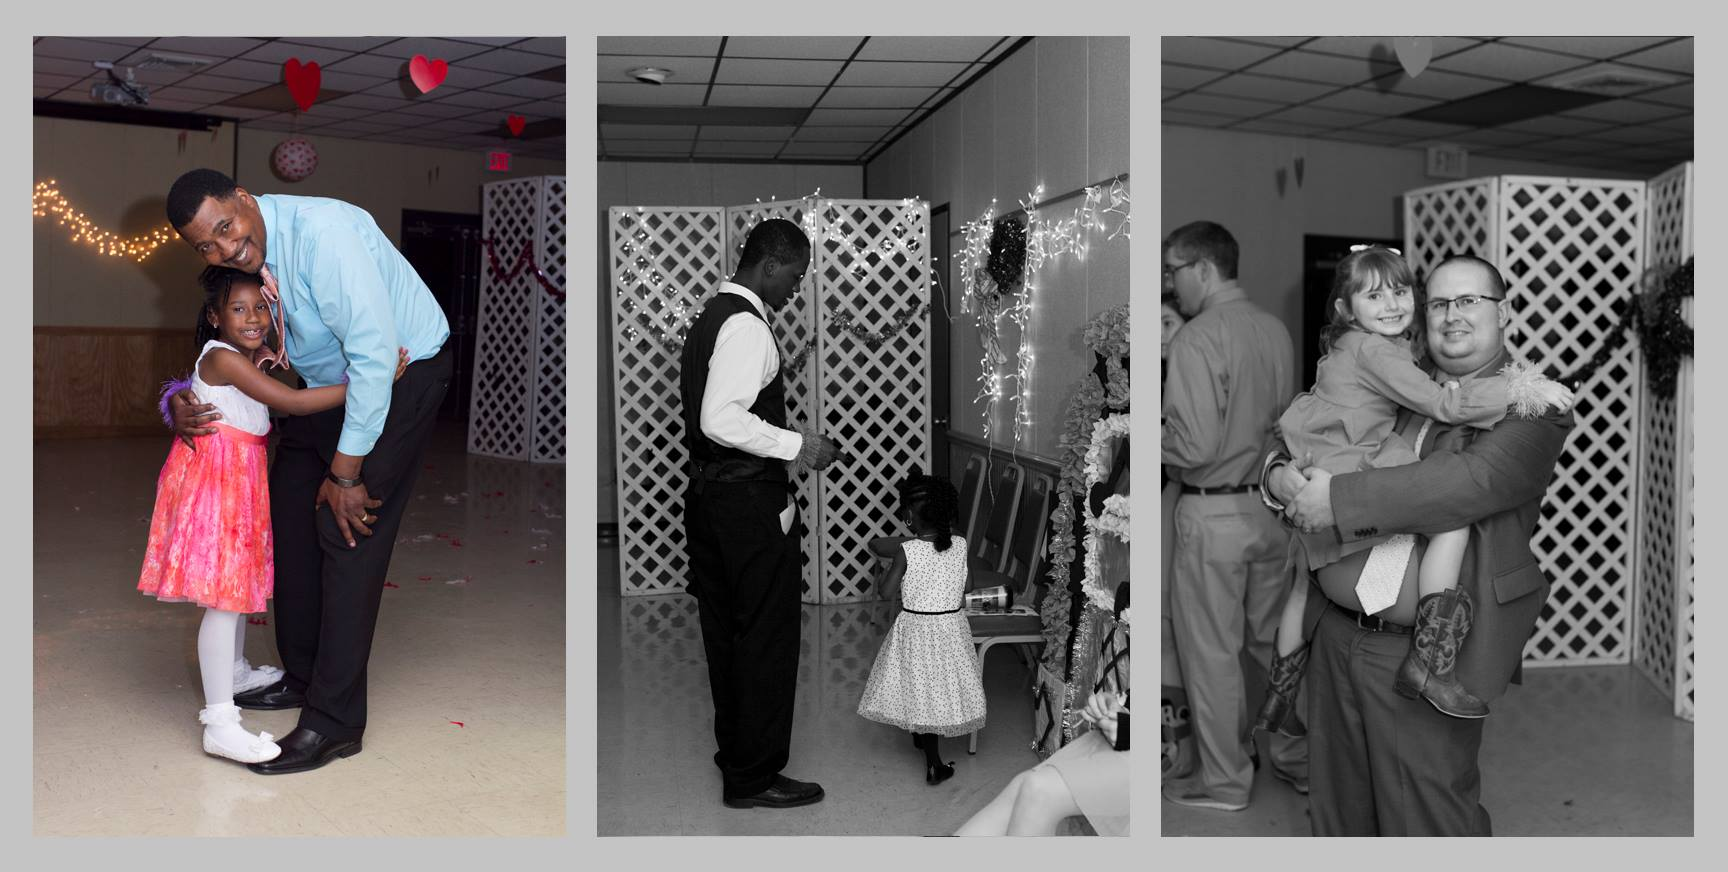 fathers and daughters at the dance